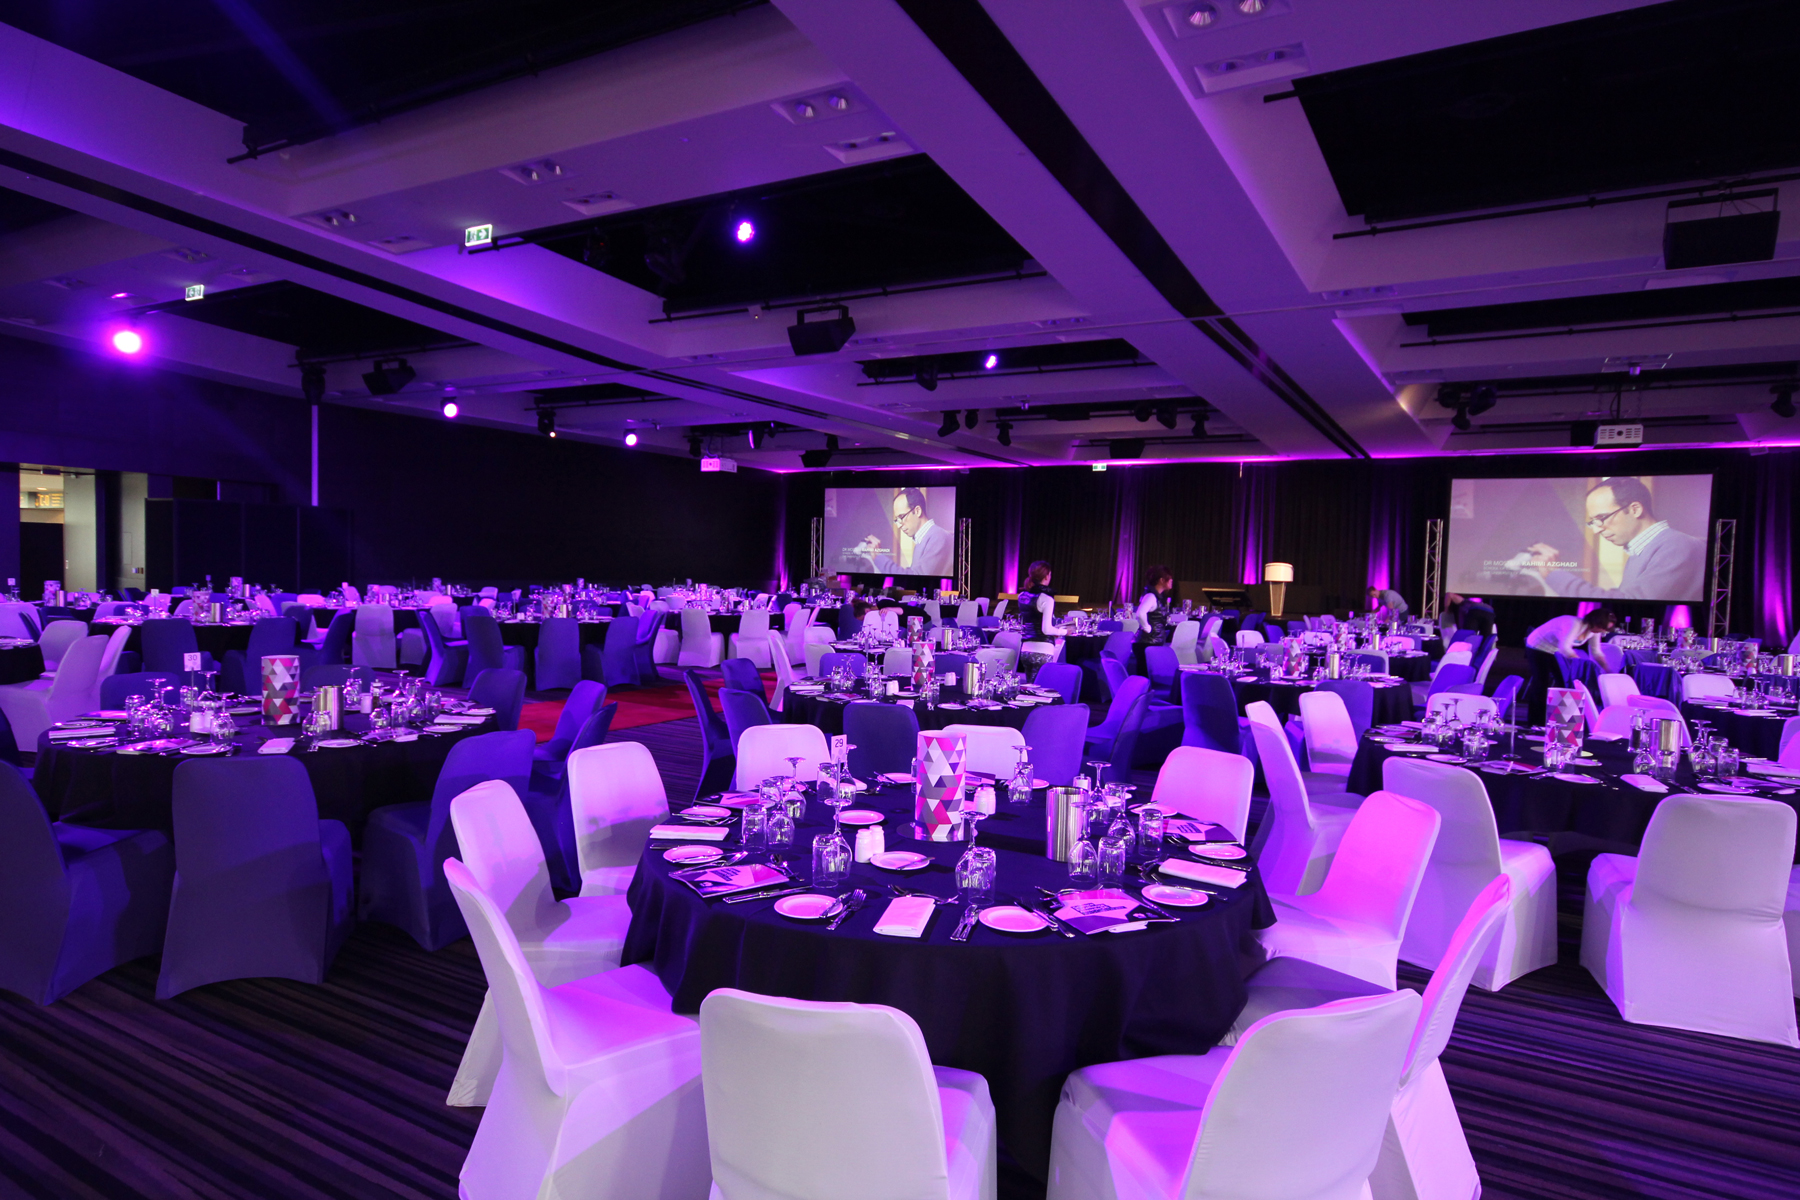 Adelaide Convention Centre Event Lighting LED Screens